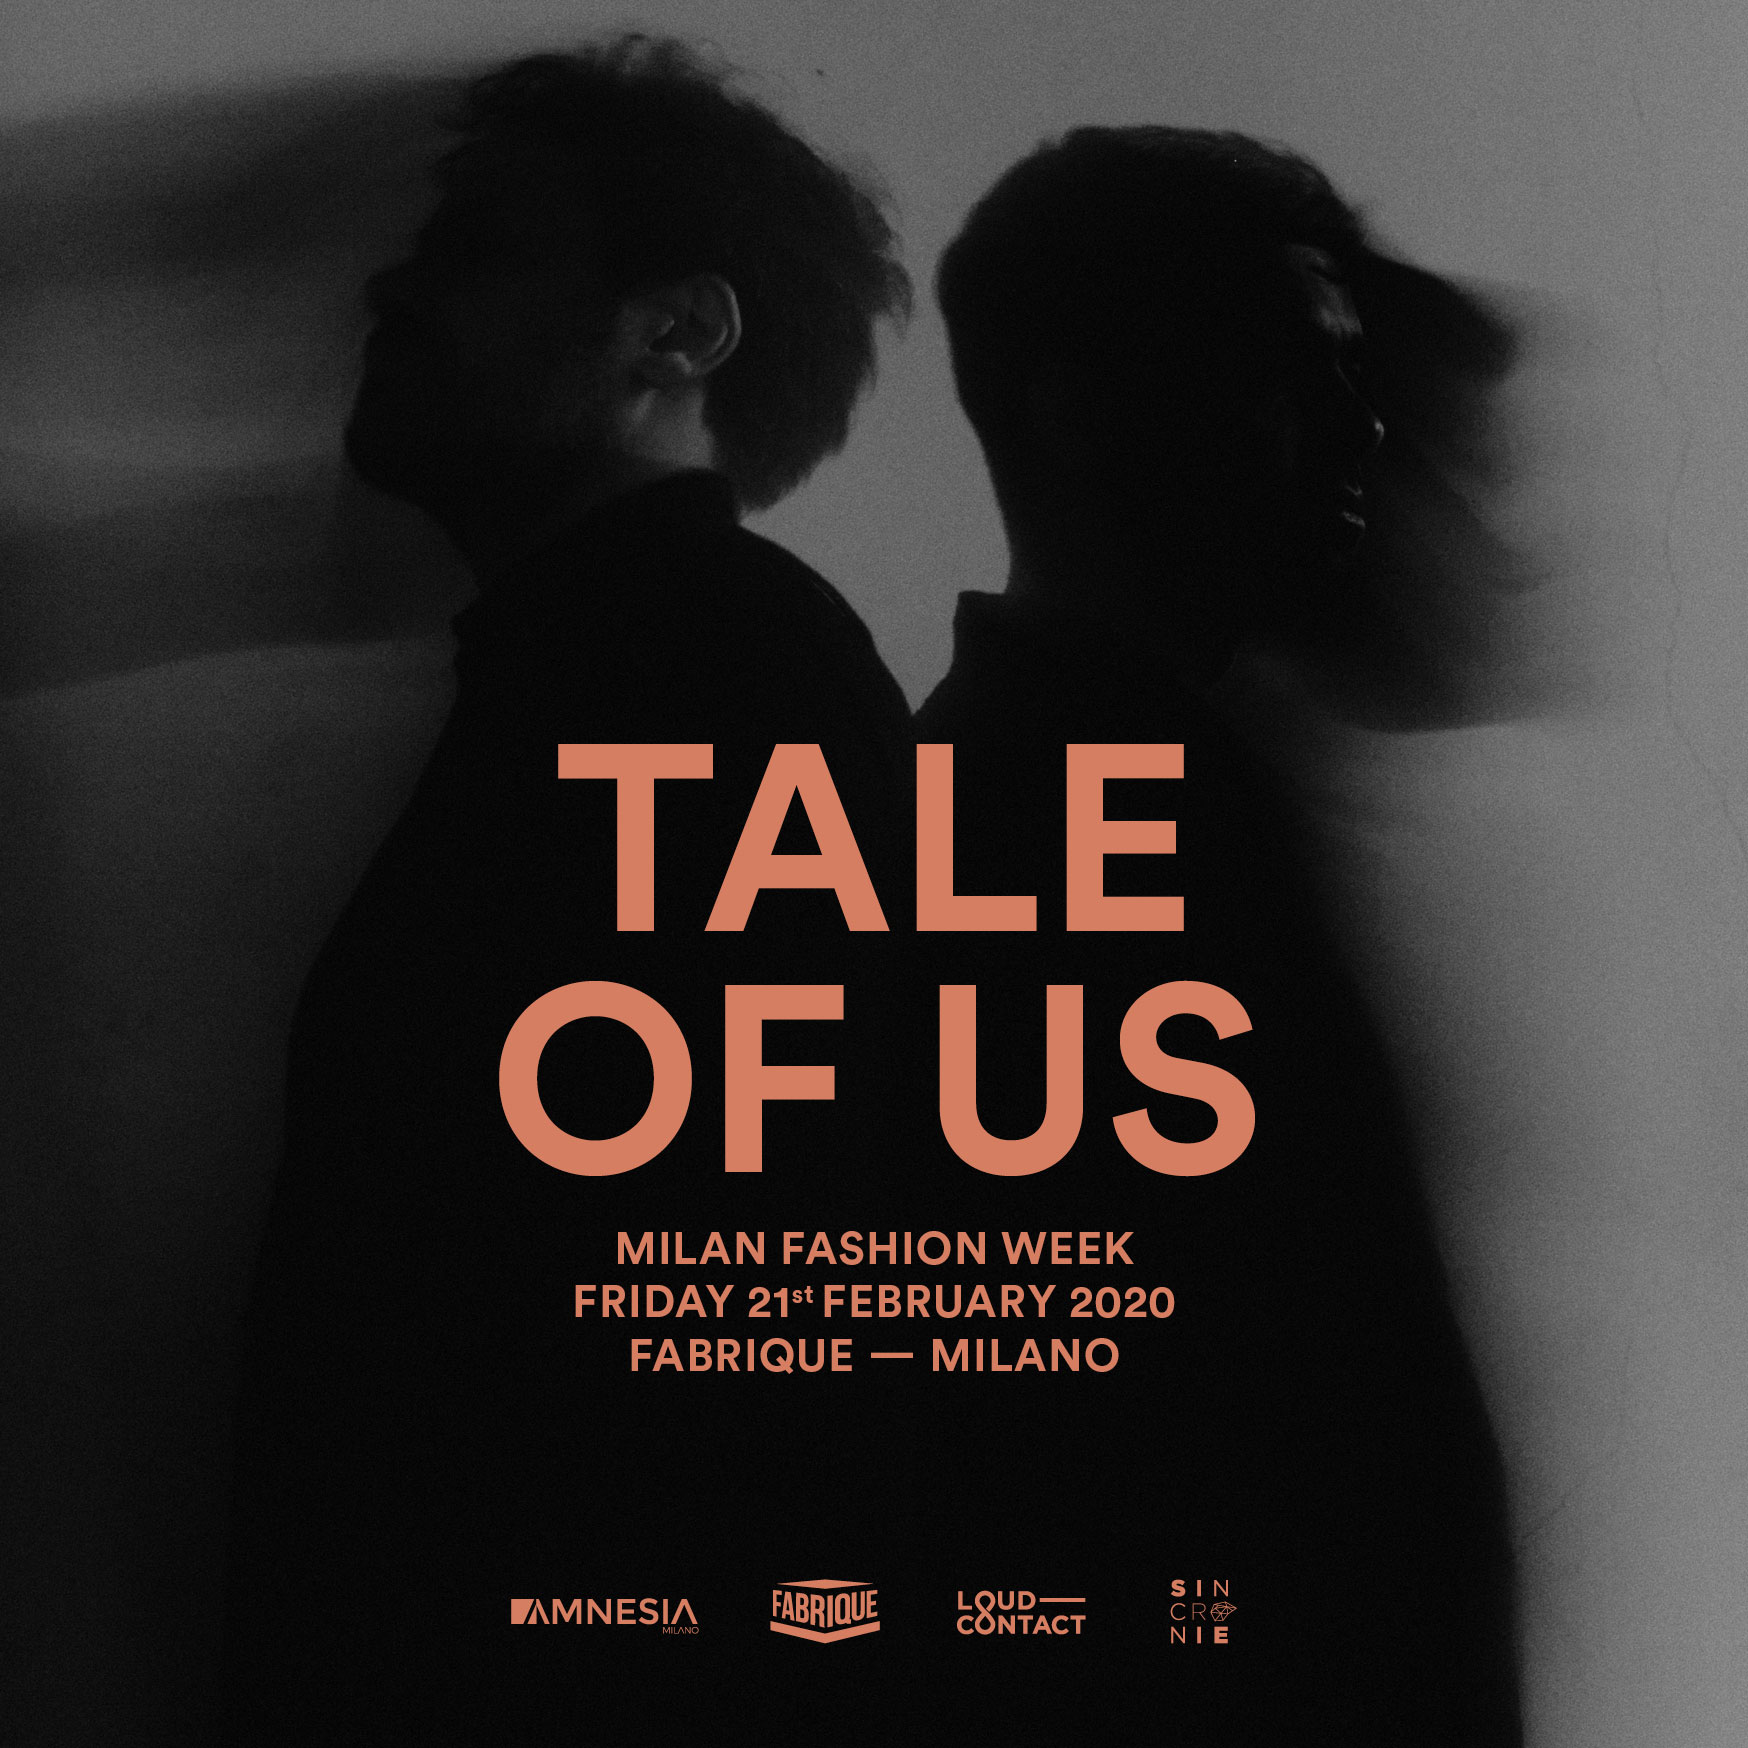 TALE OF US at Fabrique